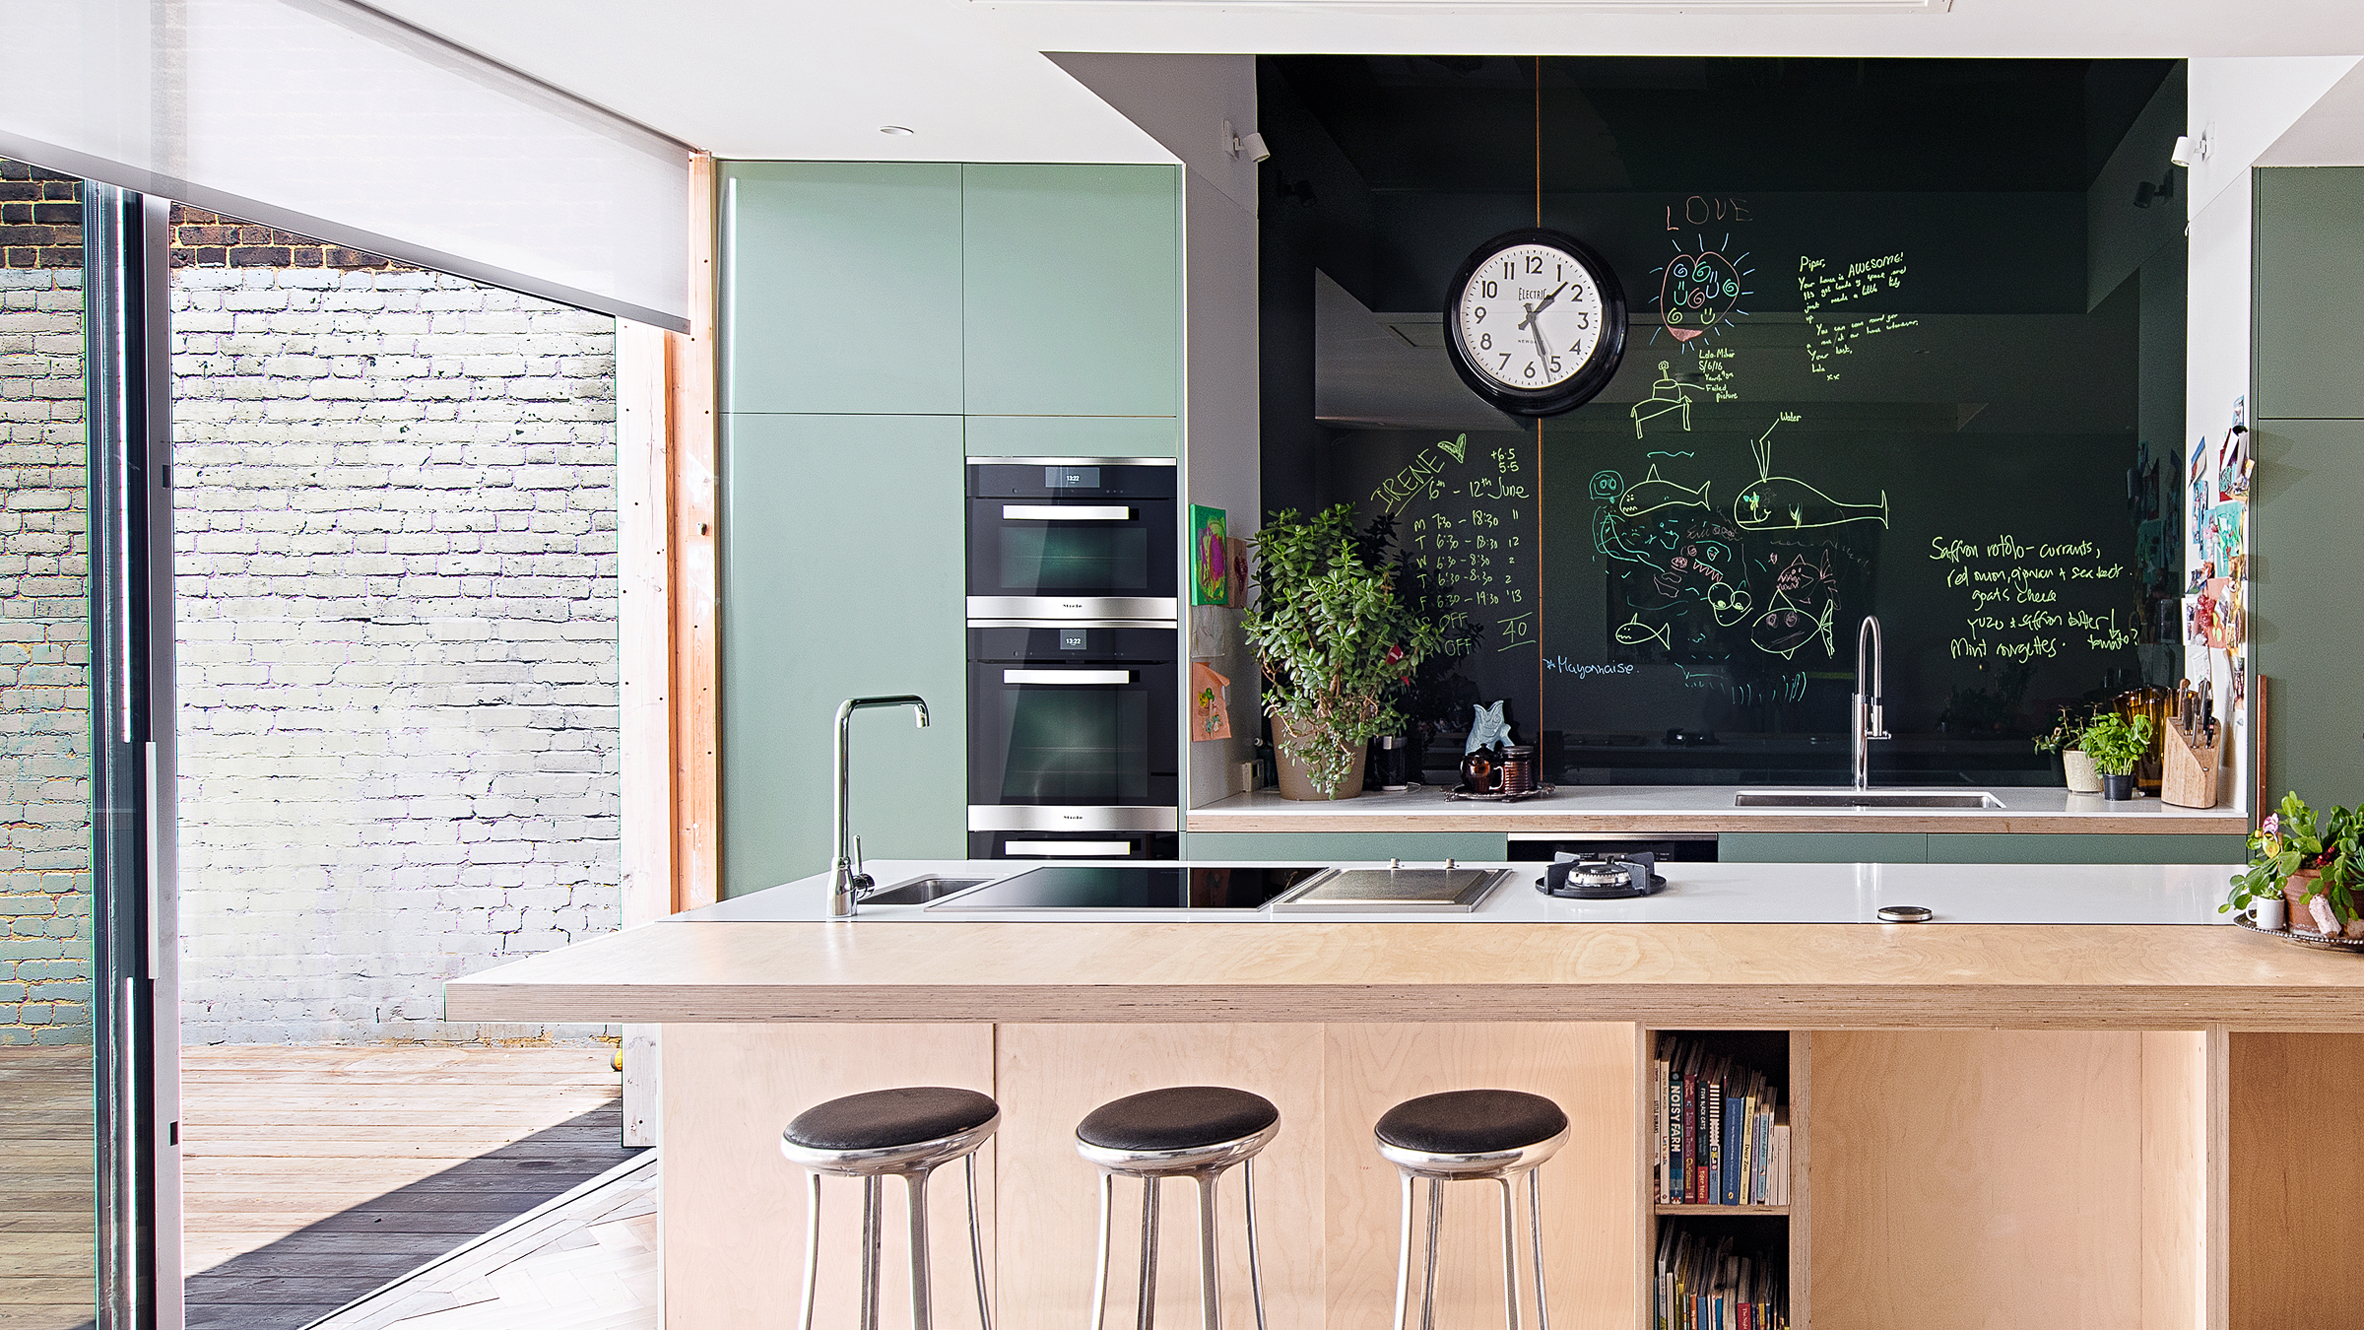 kitchens design a kitchen See inside the kitchens of famous chefs with Miele s new film series